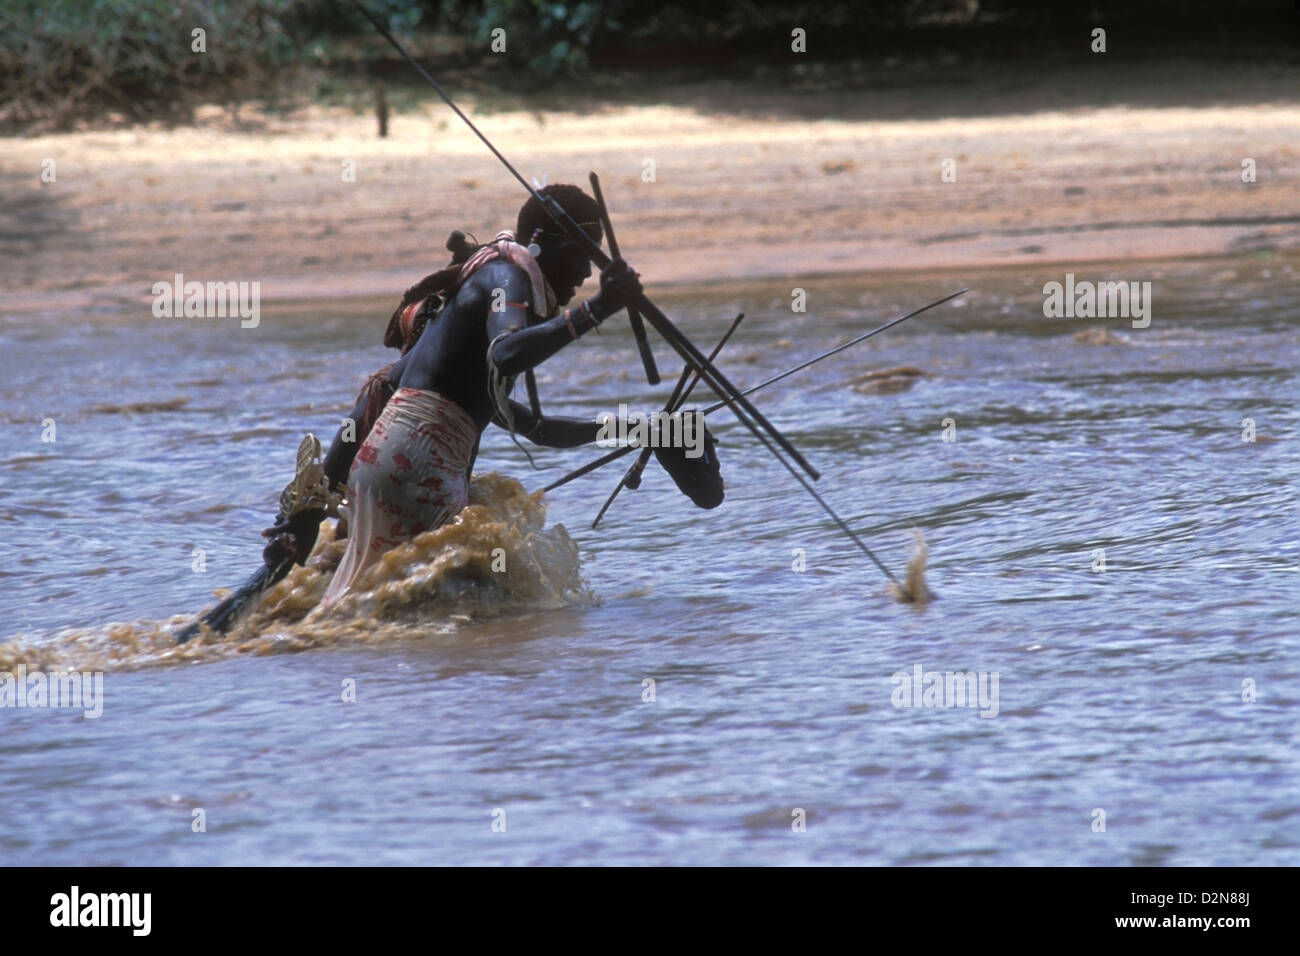 Native Spear Fishing in African River Stock Photo, Royalty ...